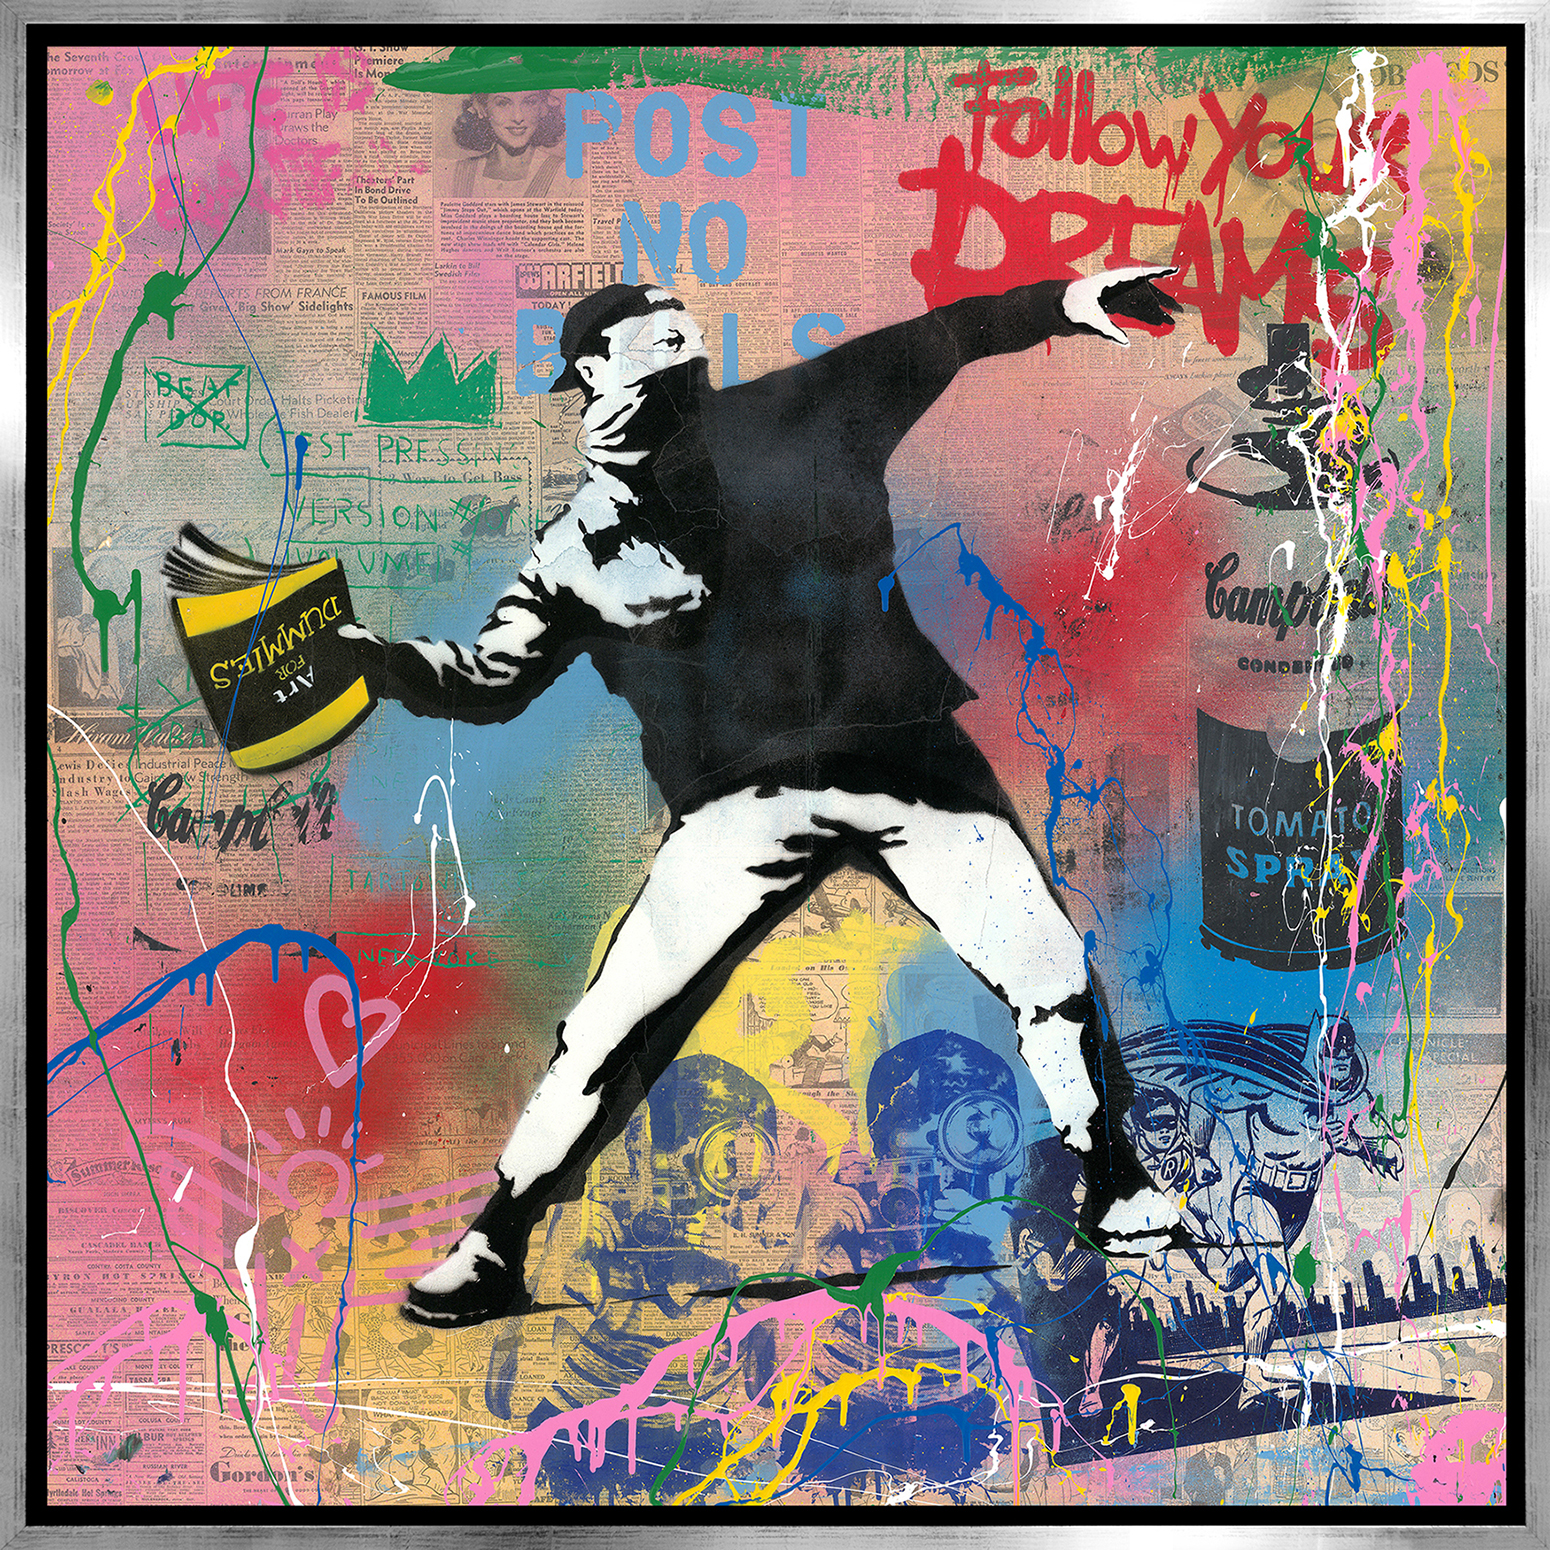 Mr. Brainwash - Banksy Thrower , 9003-012-100